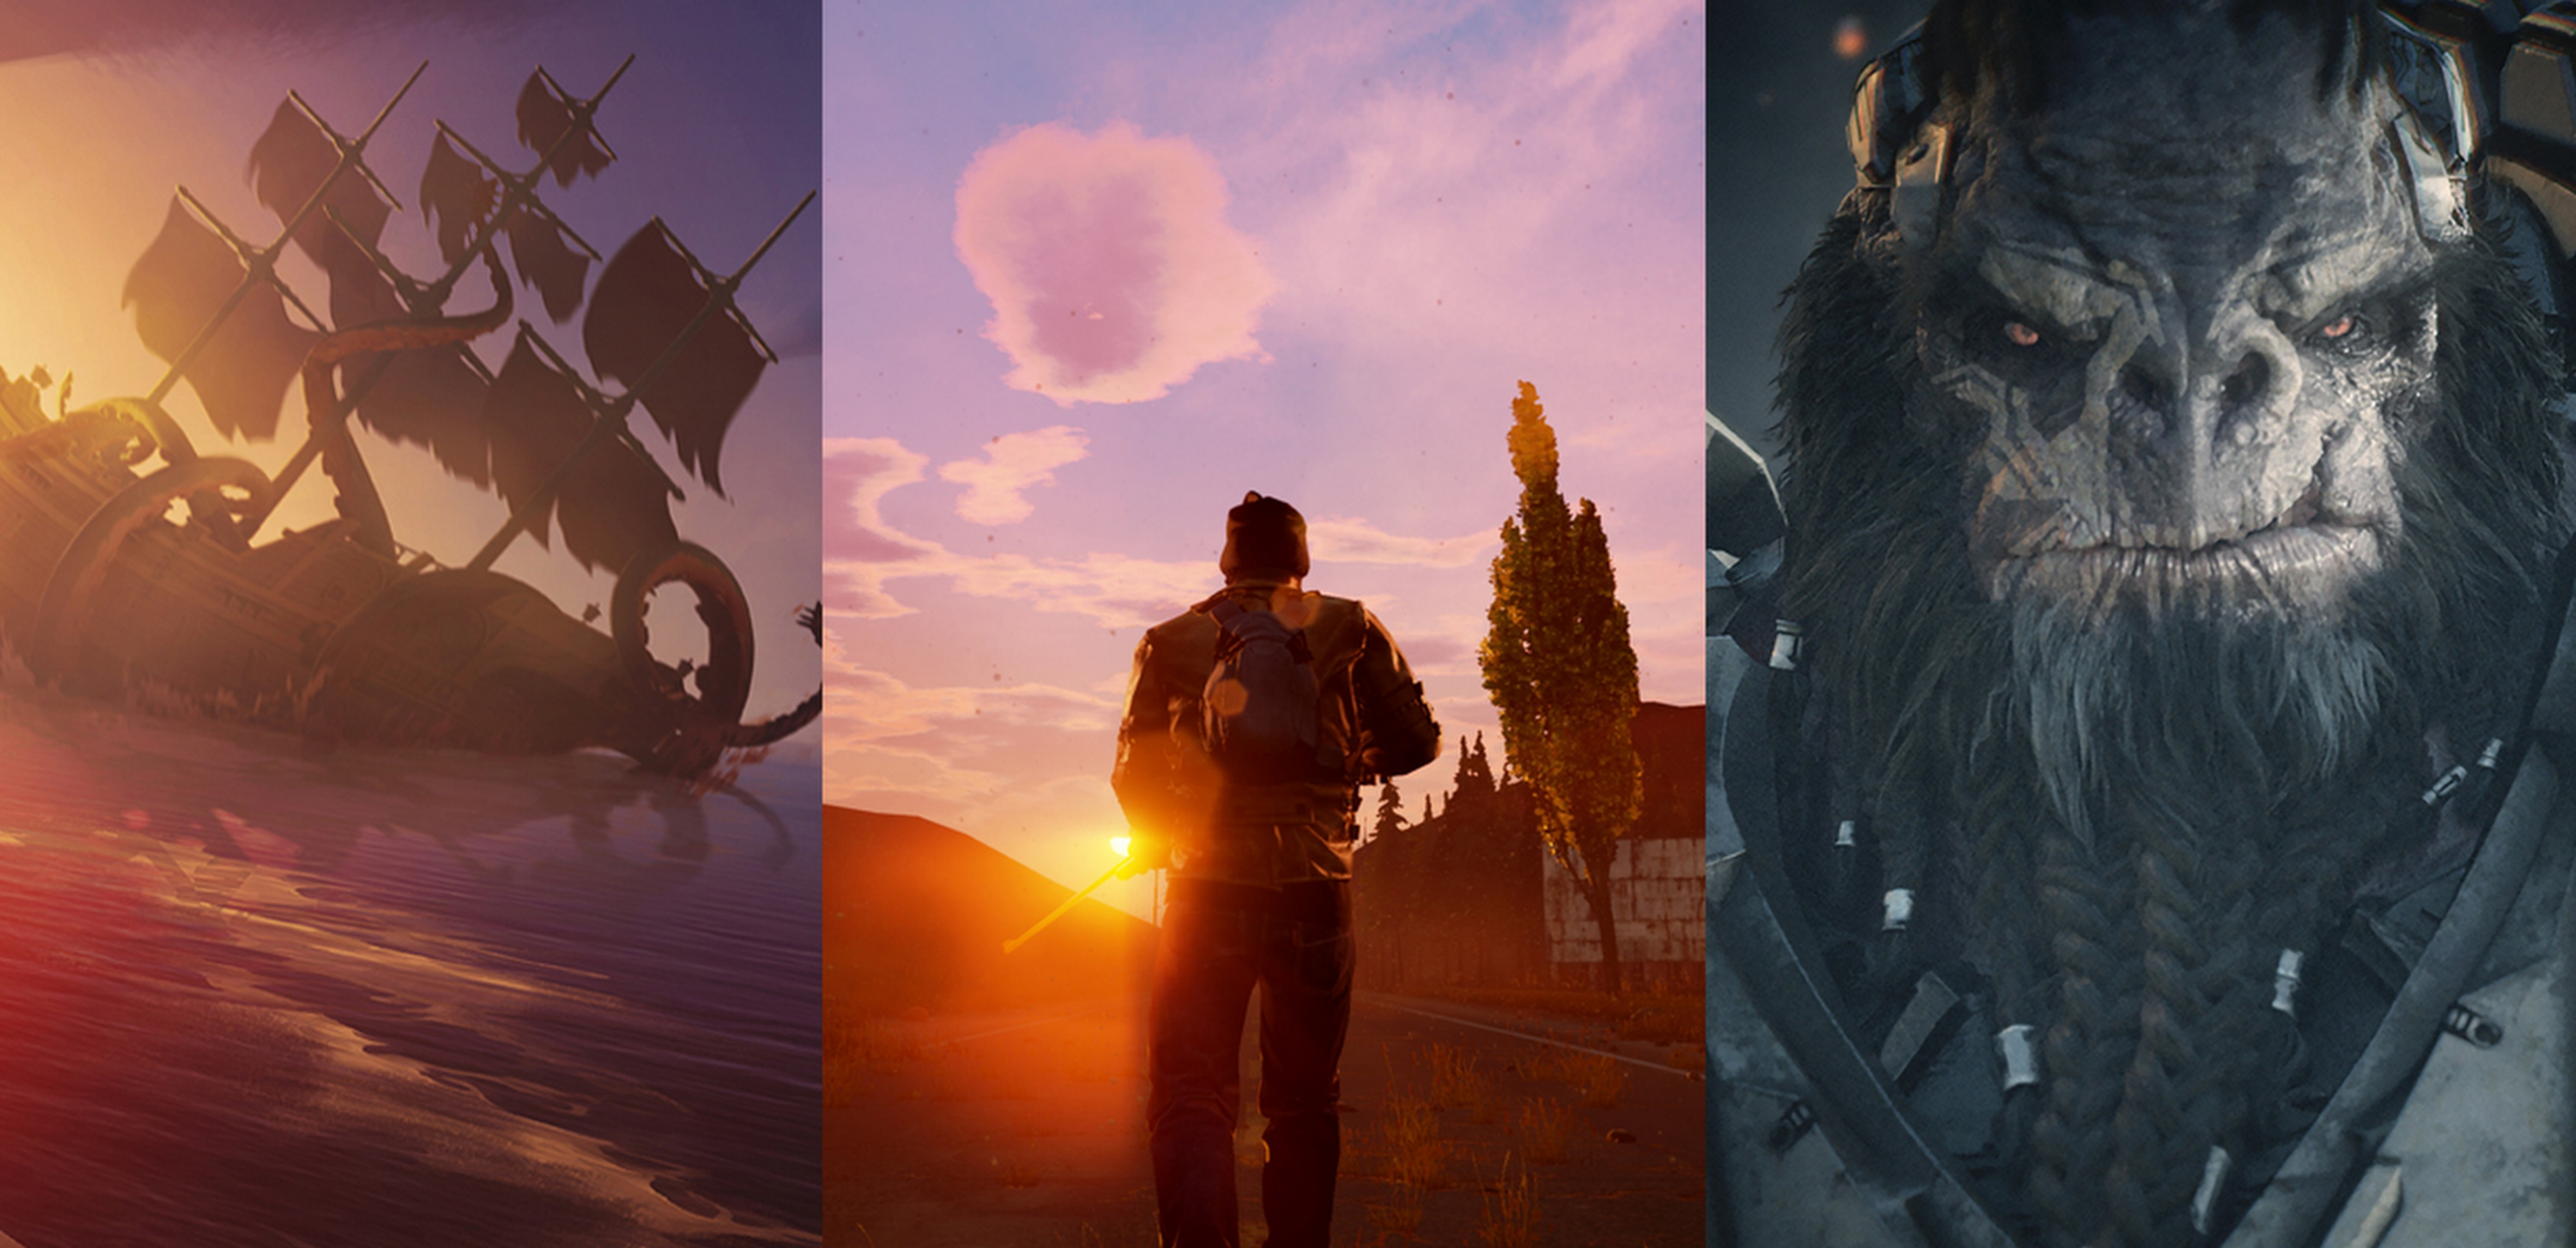 2017 will be an epic year for Xbox One and Windows 10 gamers